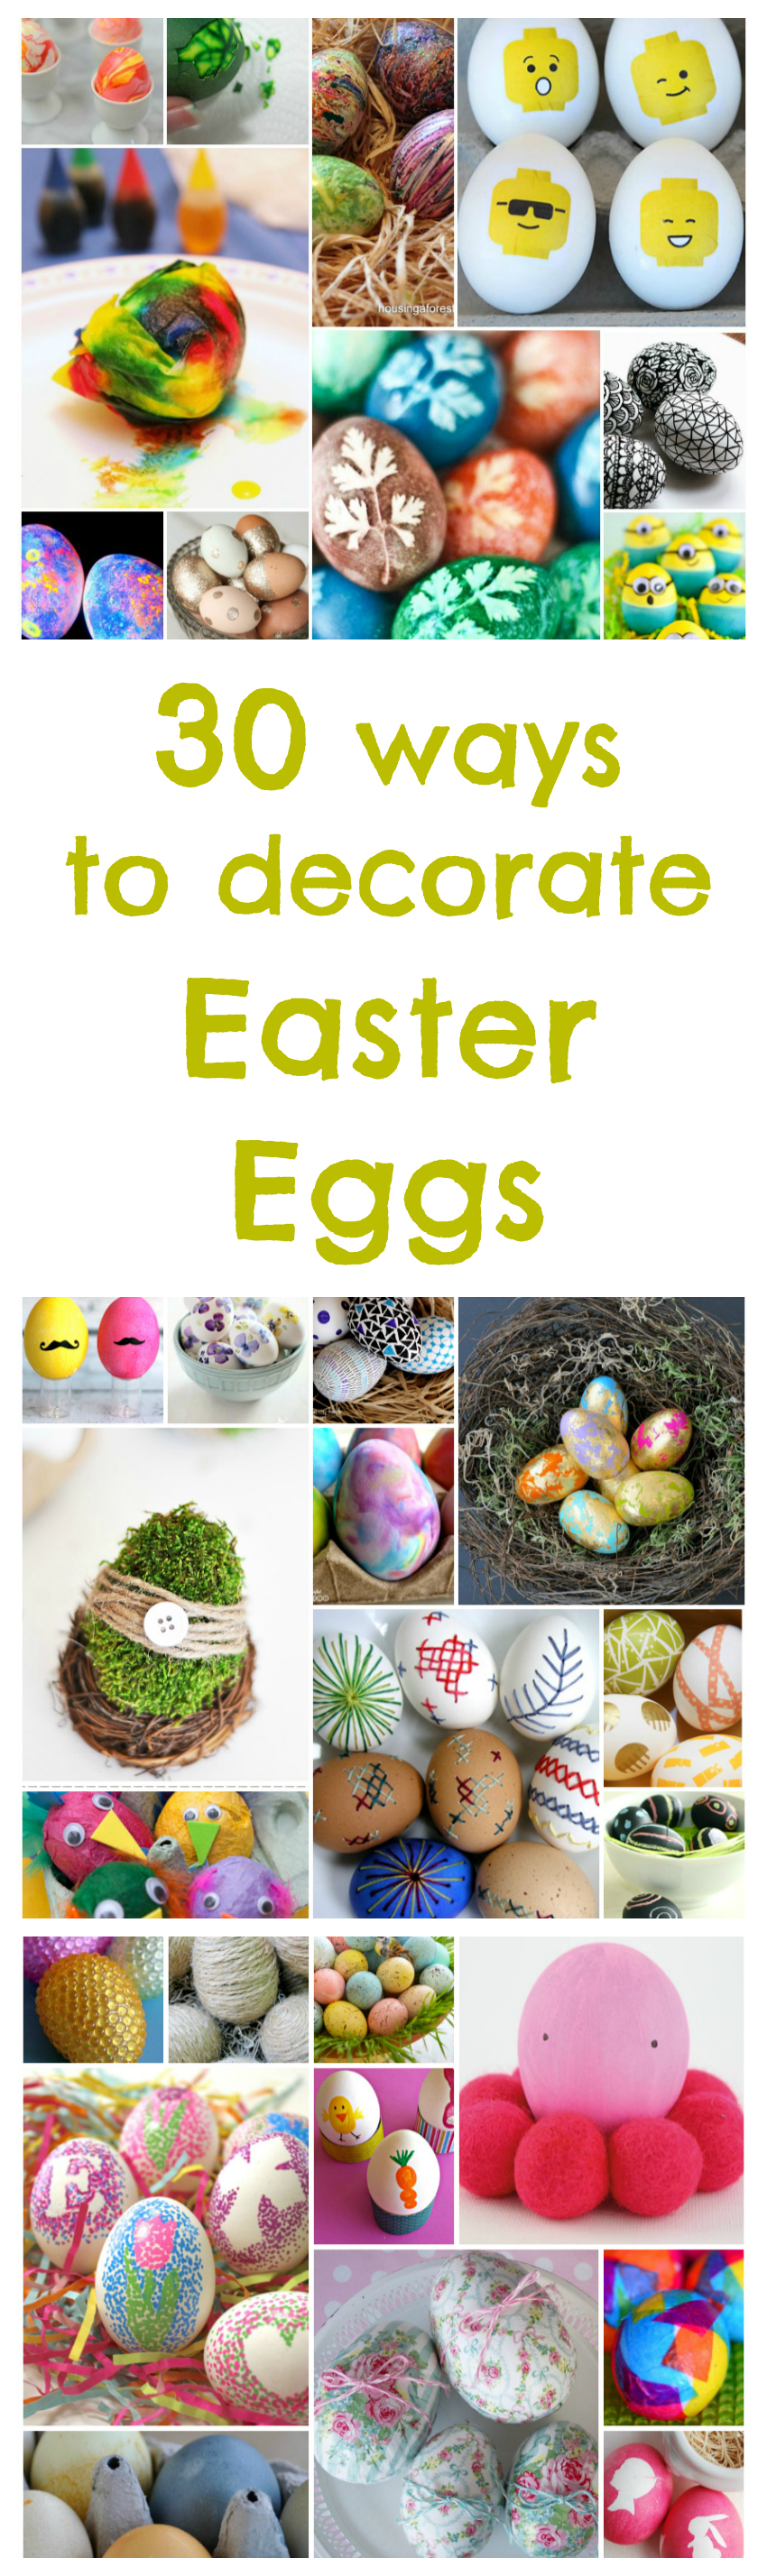 30 ways to decorate Easter eggs, how to decorate Easter Eggs, how to dye Easter Eggs